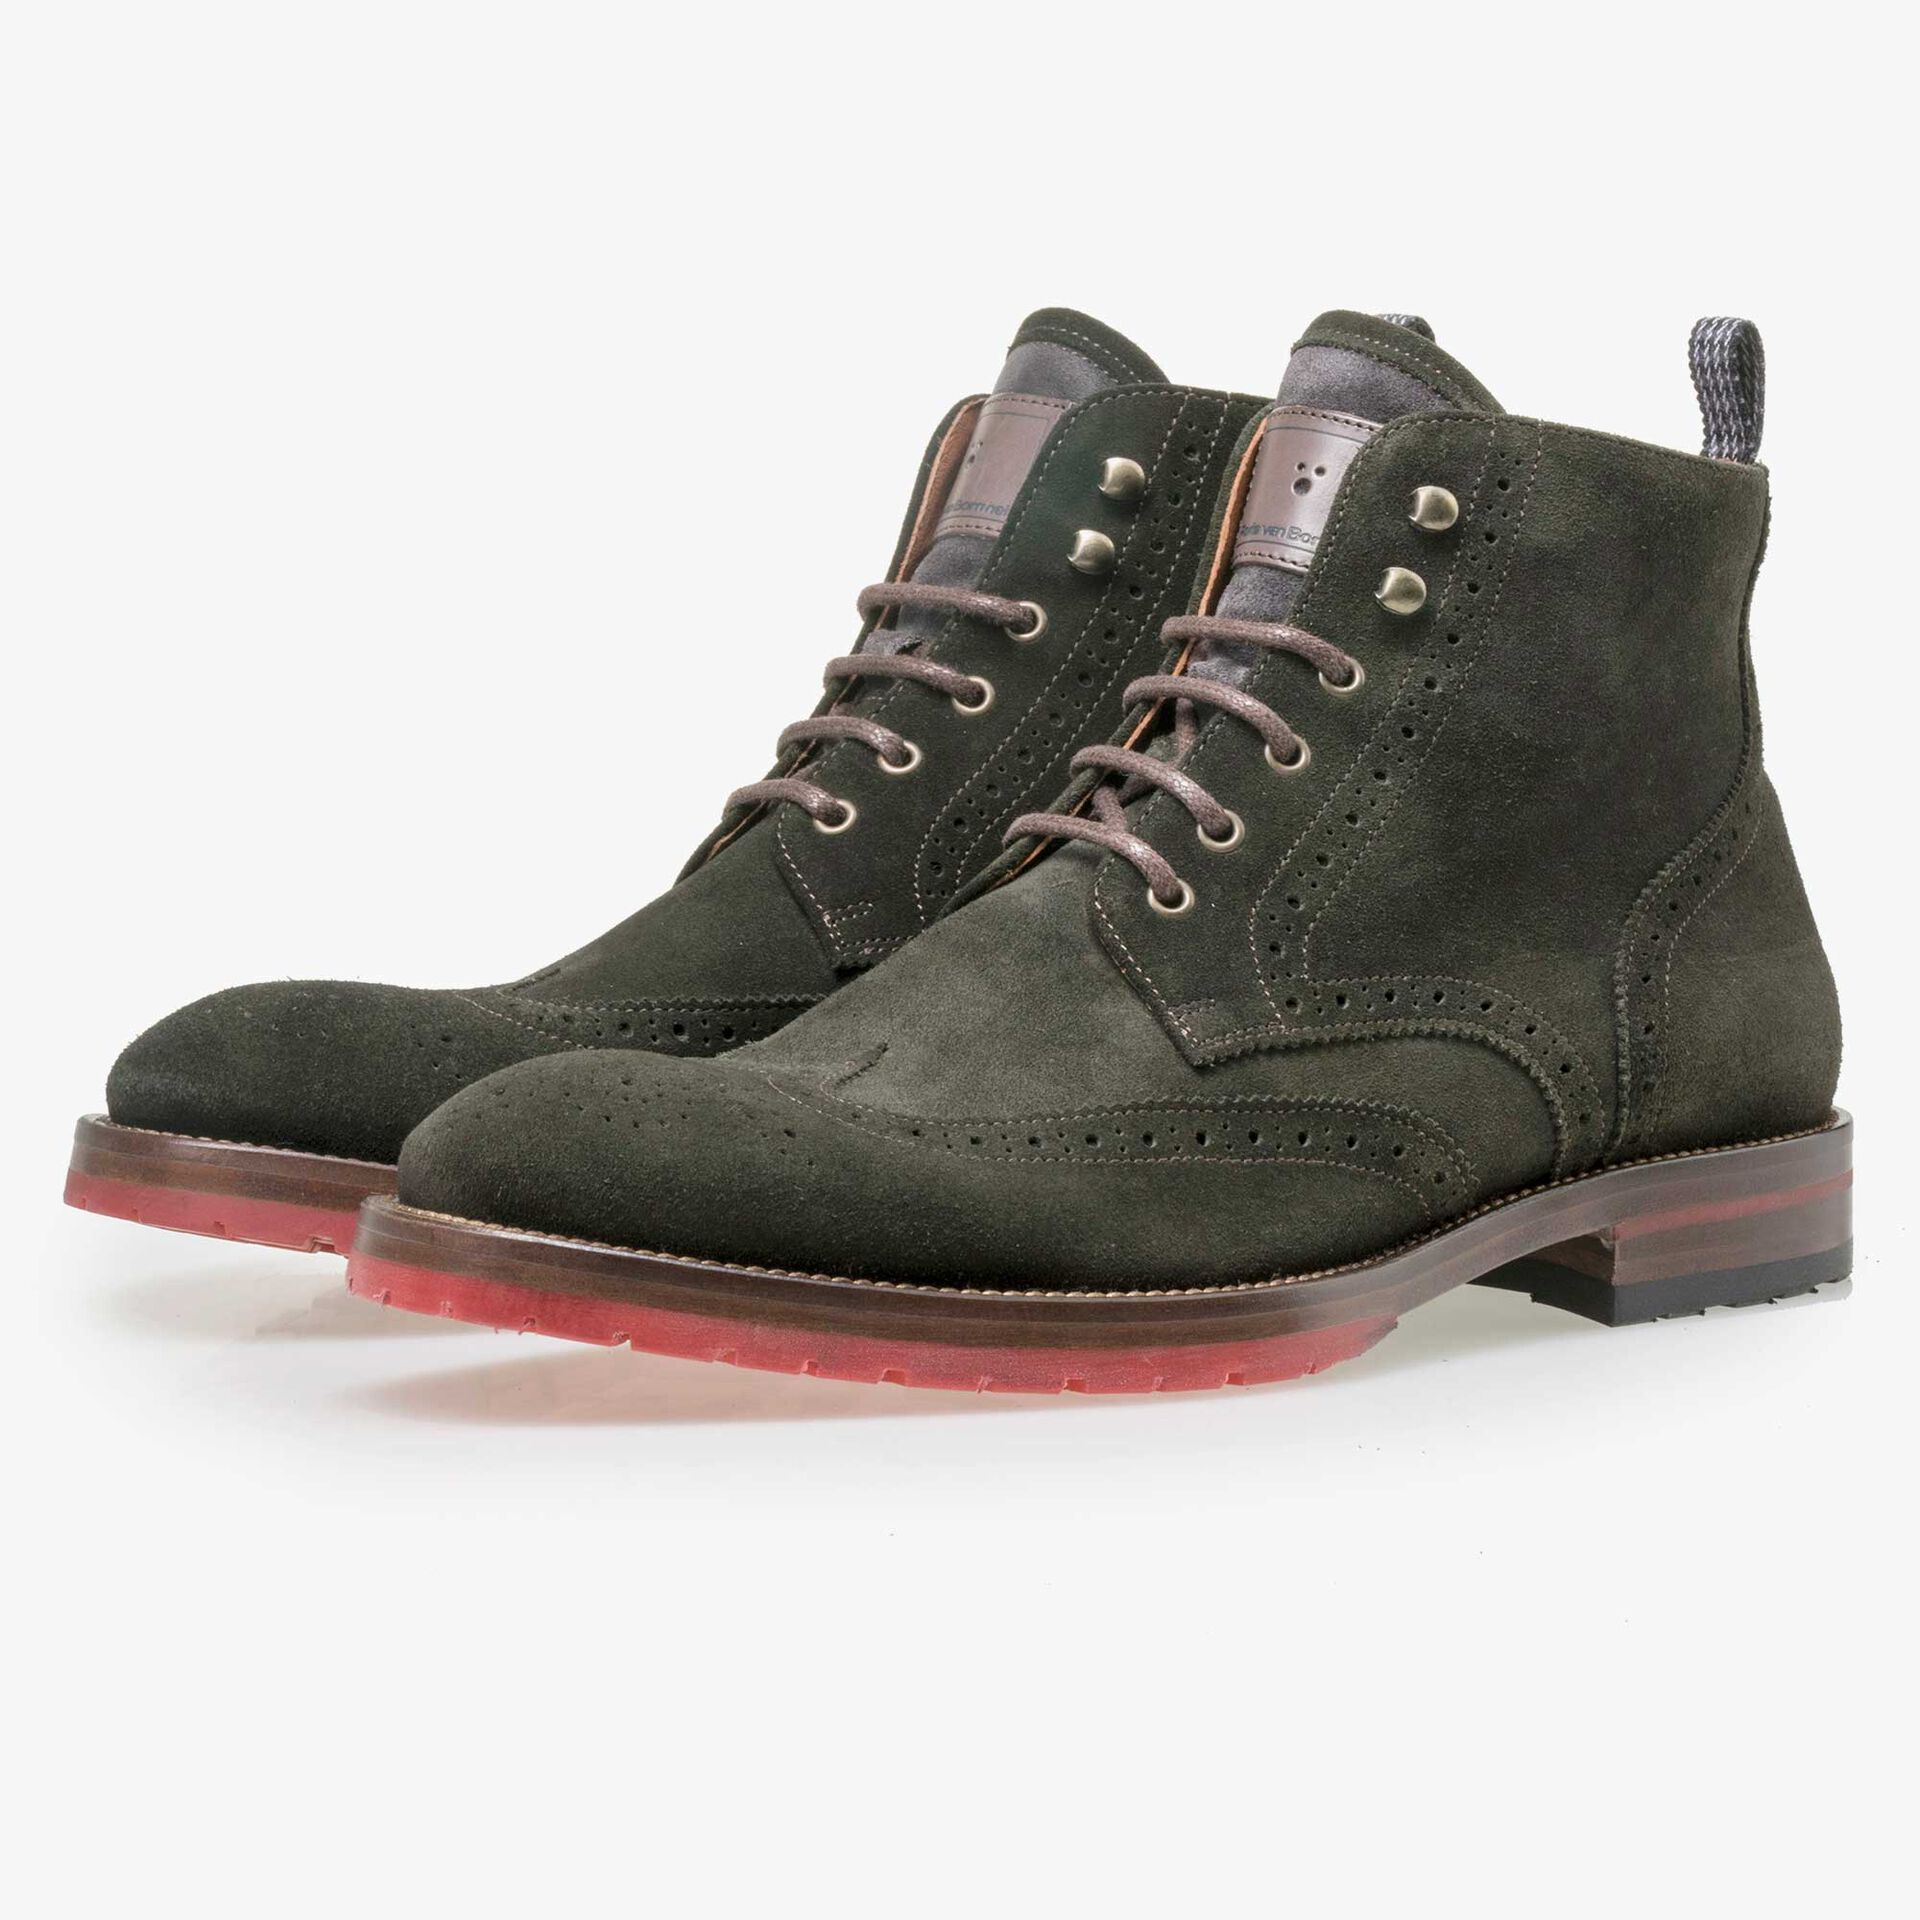 Floris van Bommel men's olive green suede leather brogue lace boot